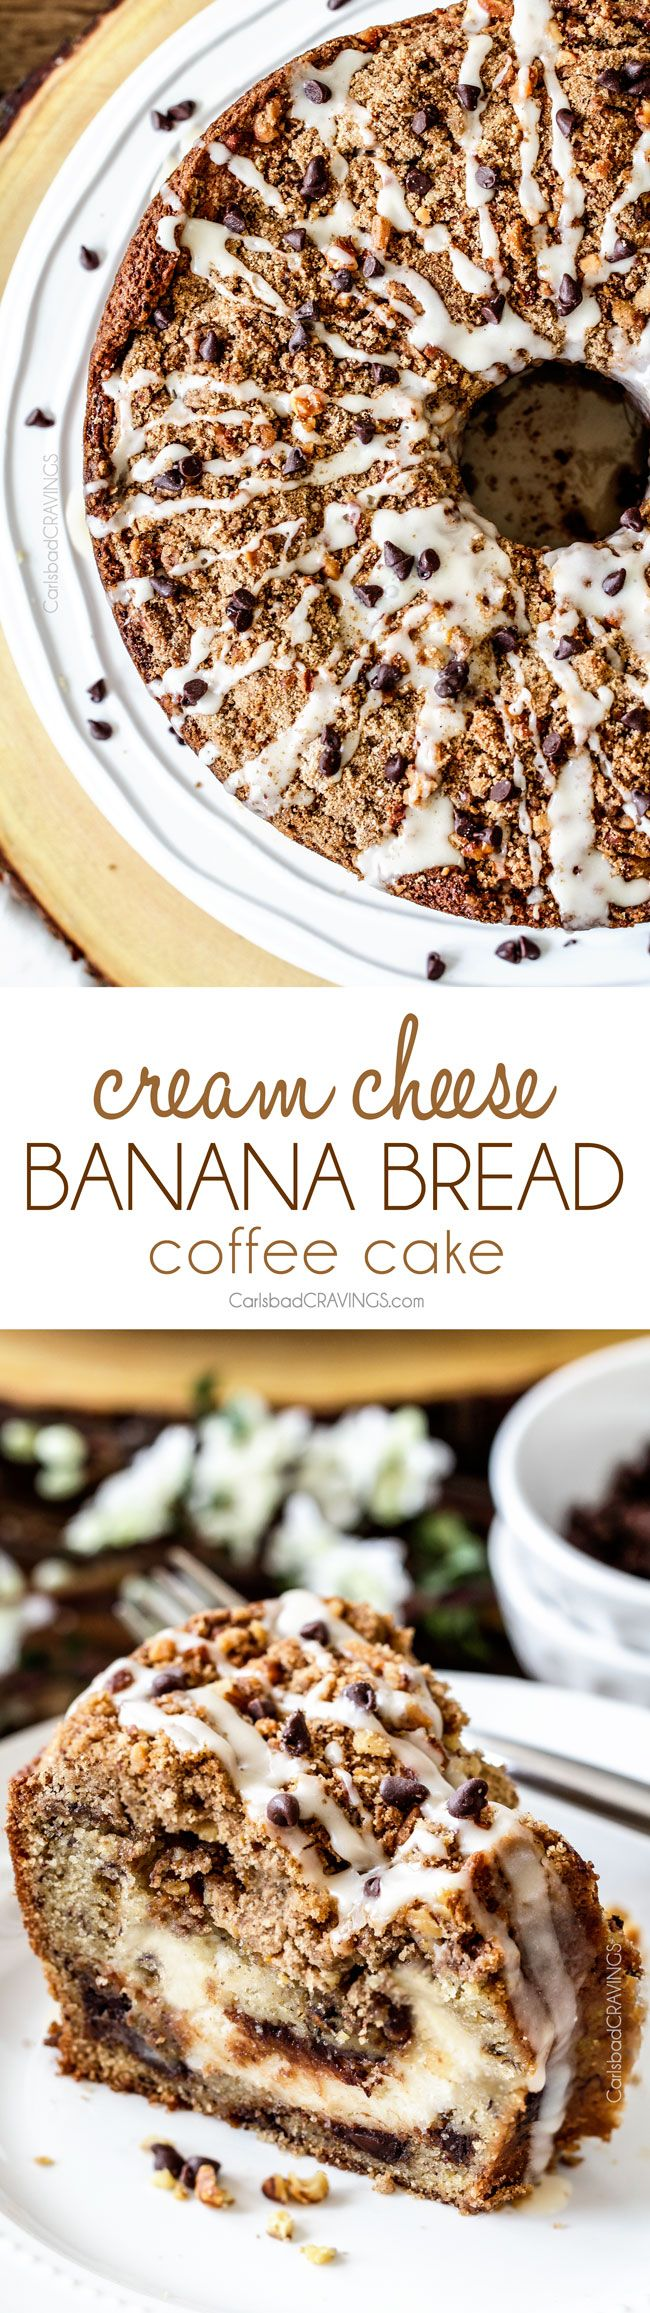 The best Banana ANYTHING ever! Moist Banana Coffee Cake riddled with chocolate chips and walnuts (optional) with an INCREDIBLY creamy cheesecake-like cream cheese filling all topped with brown sugar walnut streusel and vanilla drizzle.: